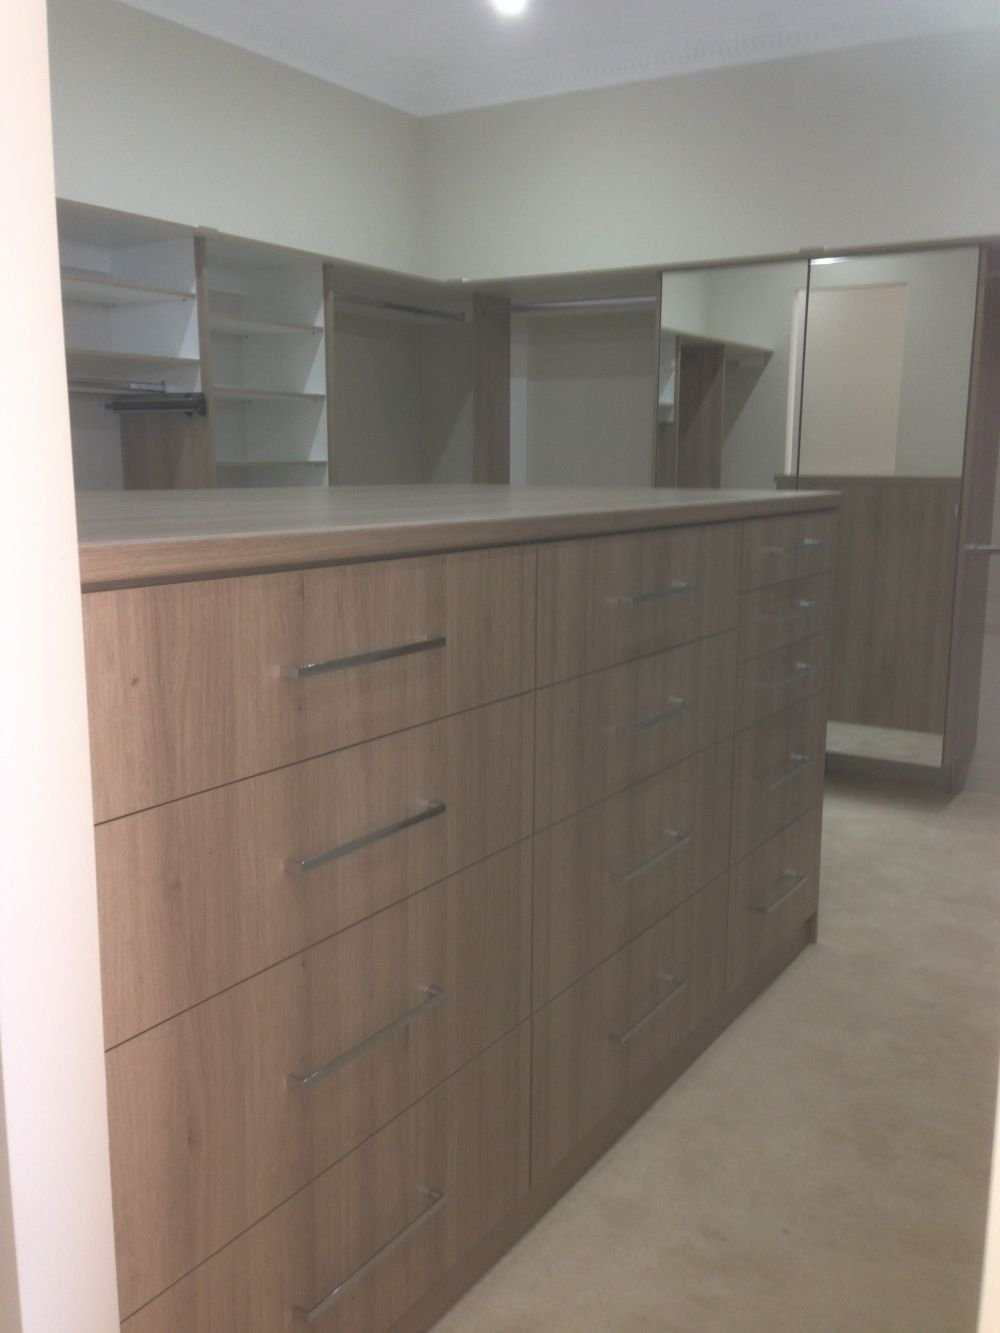 walk in wardrobe with dresser in the middle of room